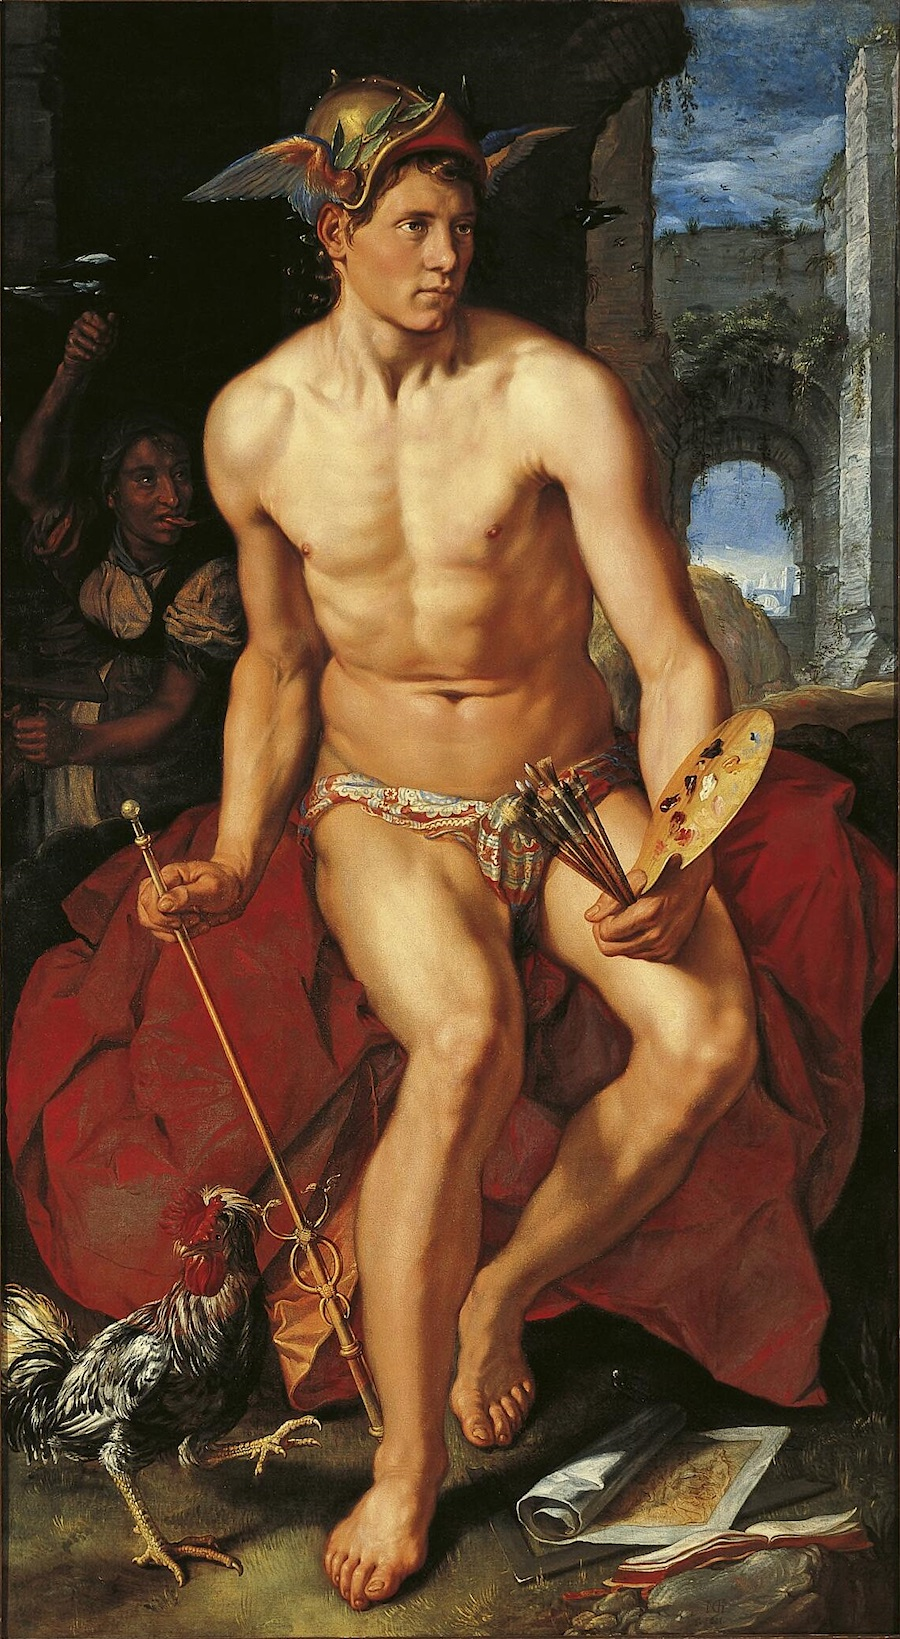 Mercury, a painting by Hendric Goltzius